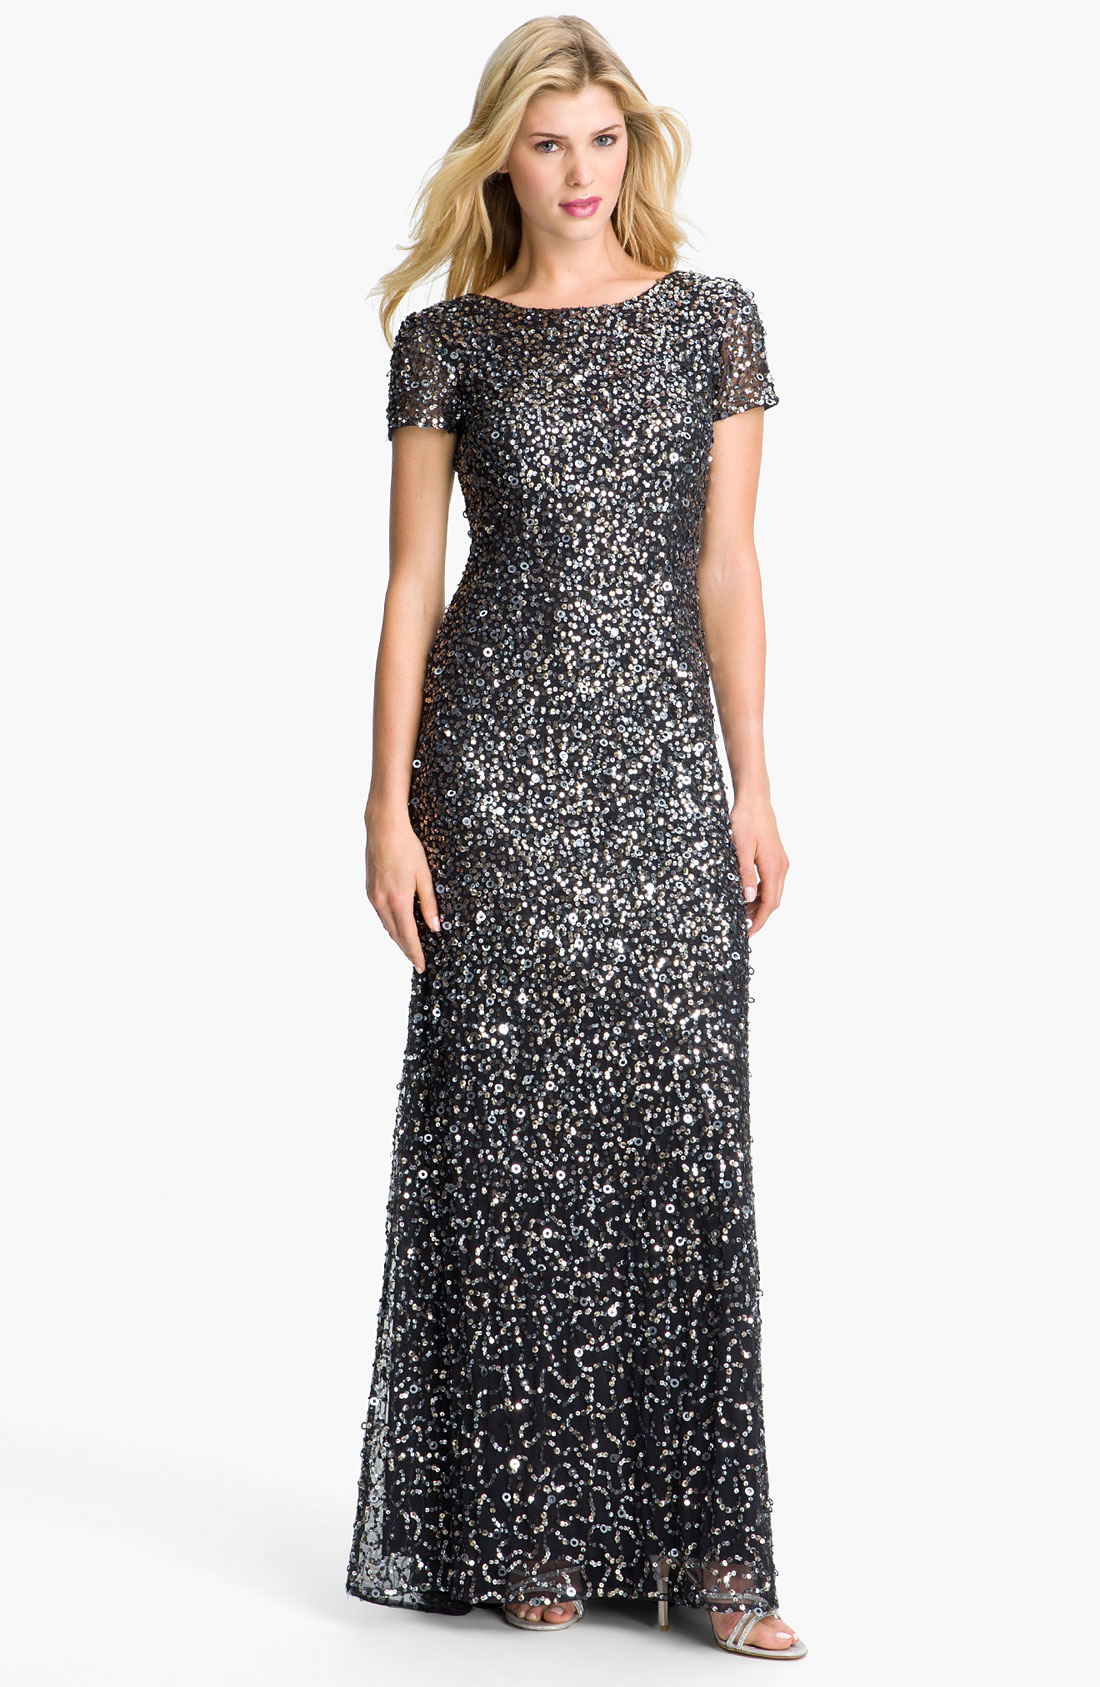 Adrianna papell Short Sleeve Sequin Mesh Gown in Silver